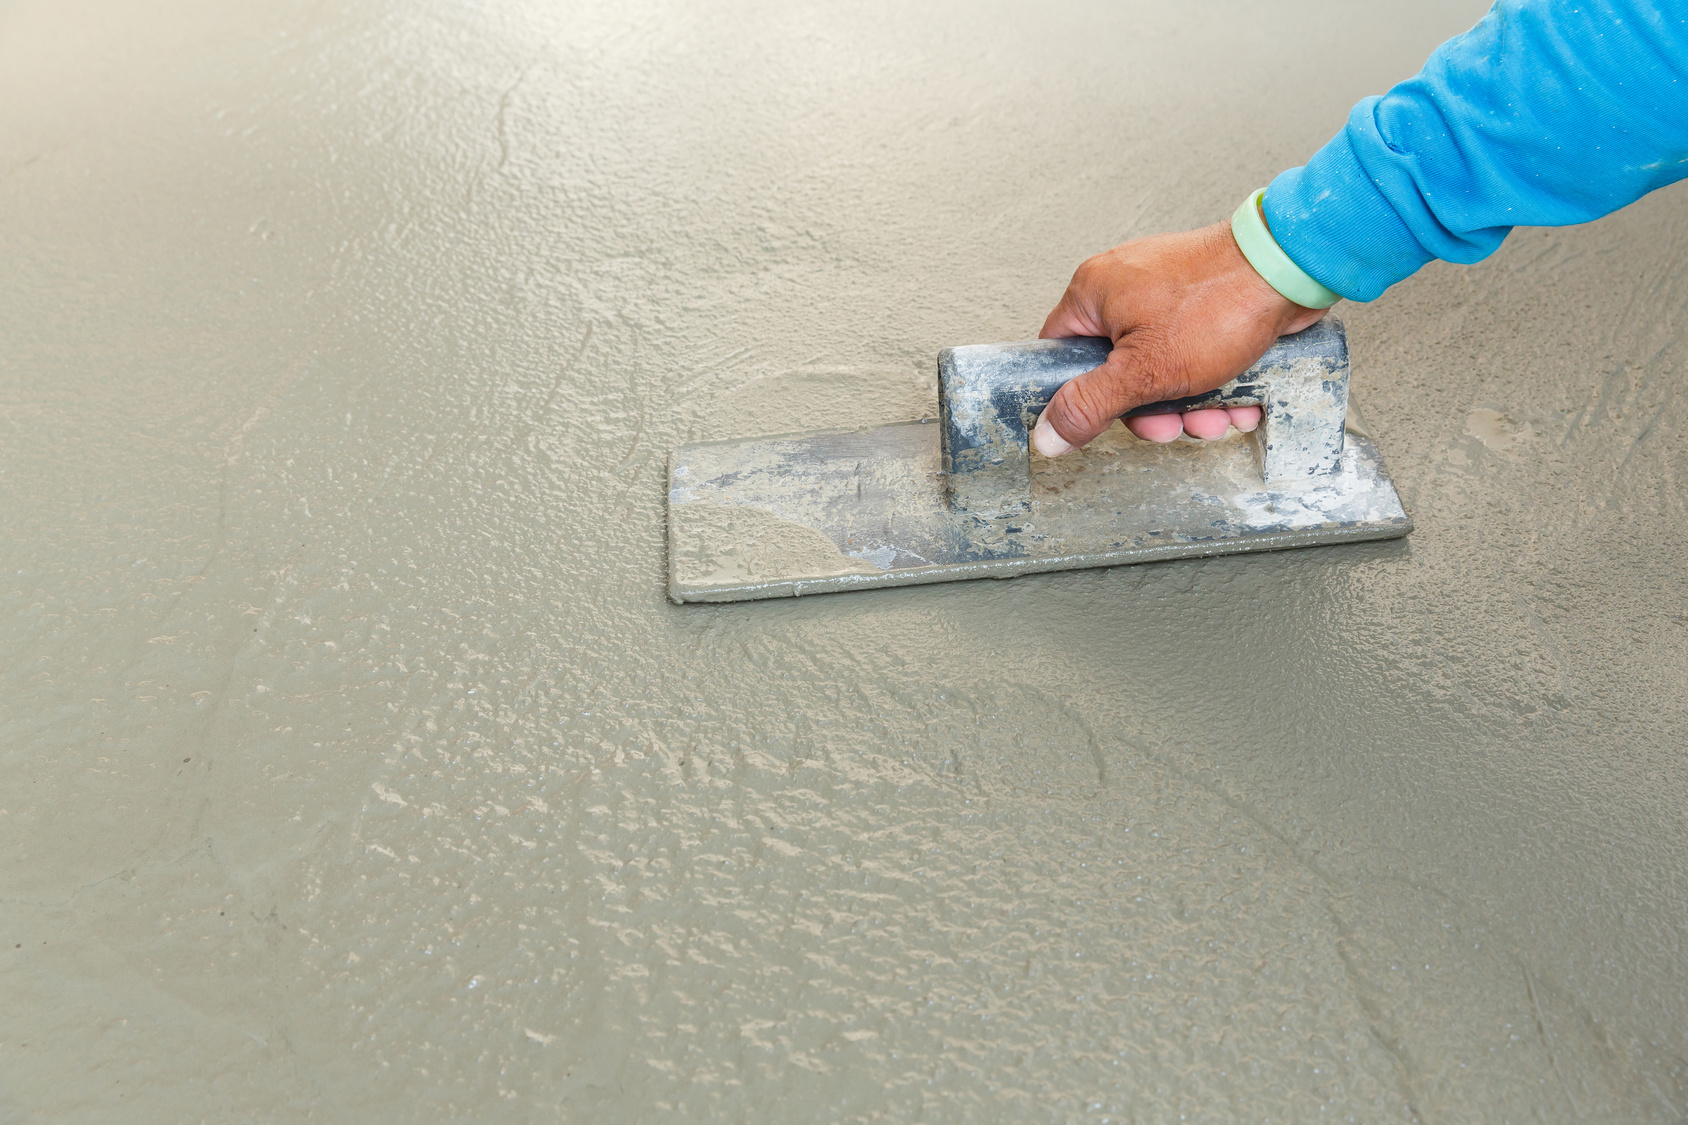 Concrete that can still be shaped with a float is obviously too wet to build on, but what about concrete that has been curing for 30 days or more? To test this concrete, you'll need an RH meter with an in-situ probe.